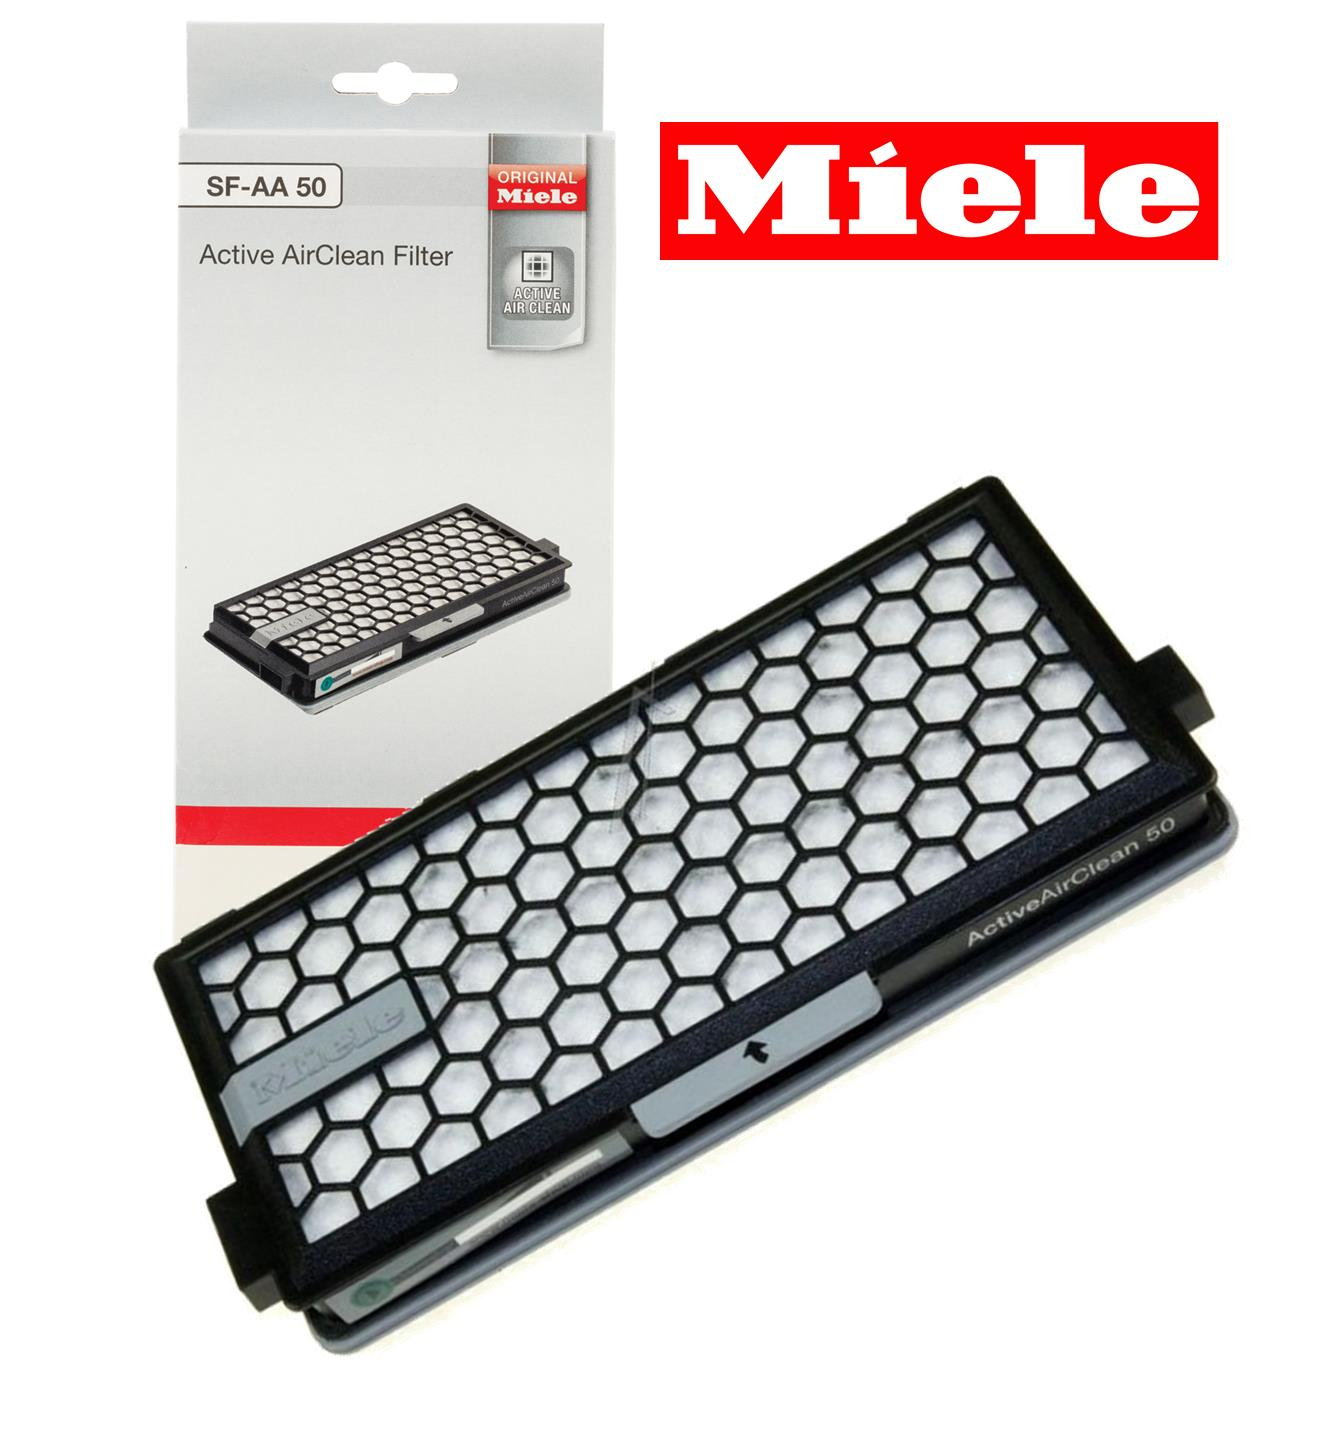 Miele genuine branded sf aac 50 active air clean filter for Miele s5000